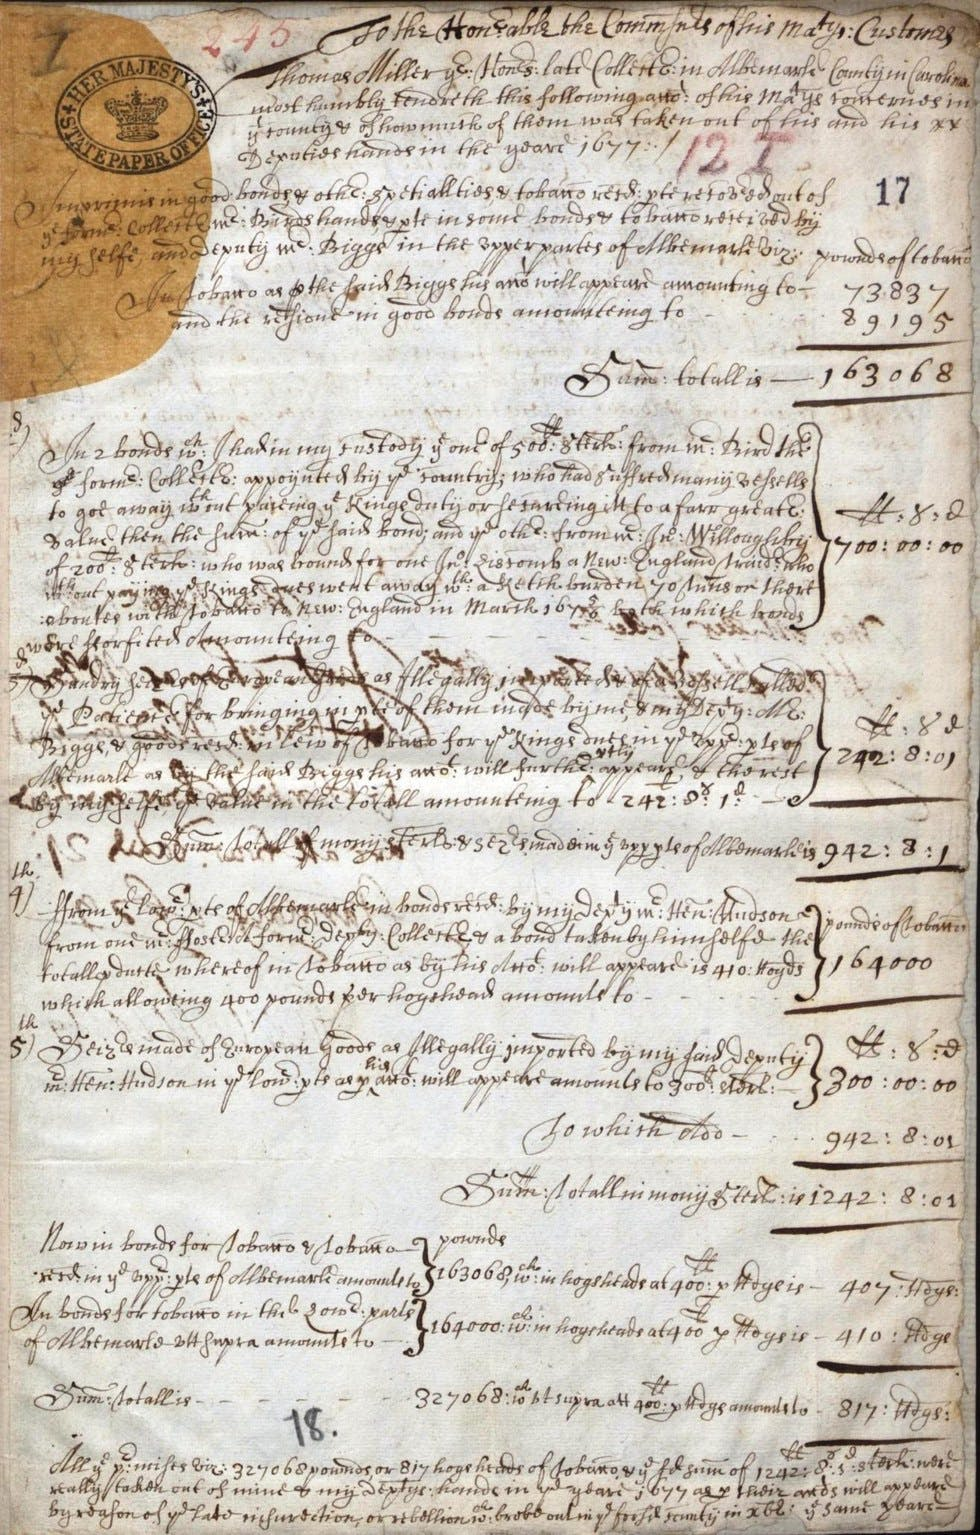 An example of ink bleeding through from the other side, Early Immigration to Barbados, http://findmypast.com, subscription database, accessed June 2017.